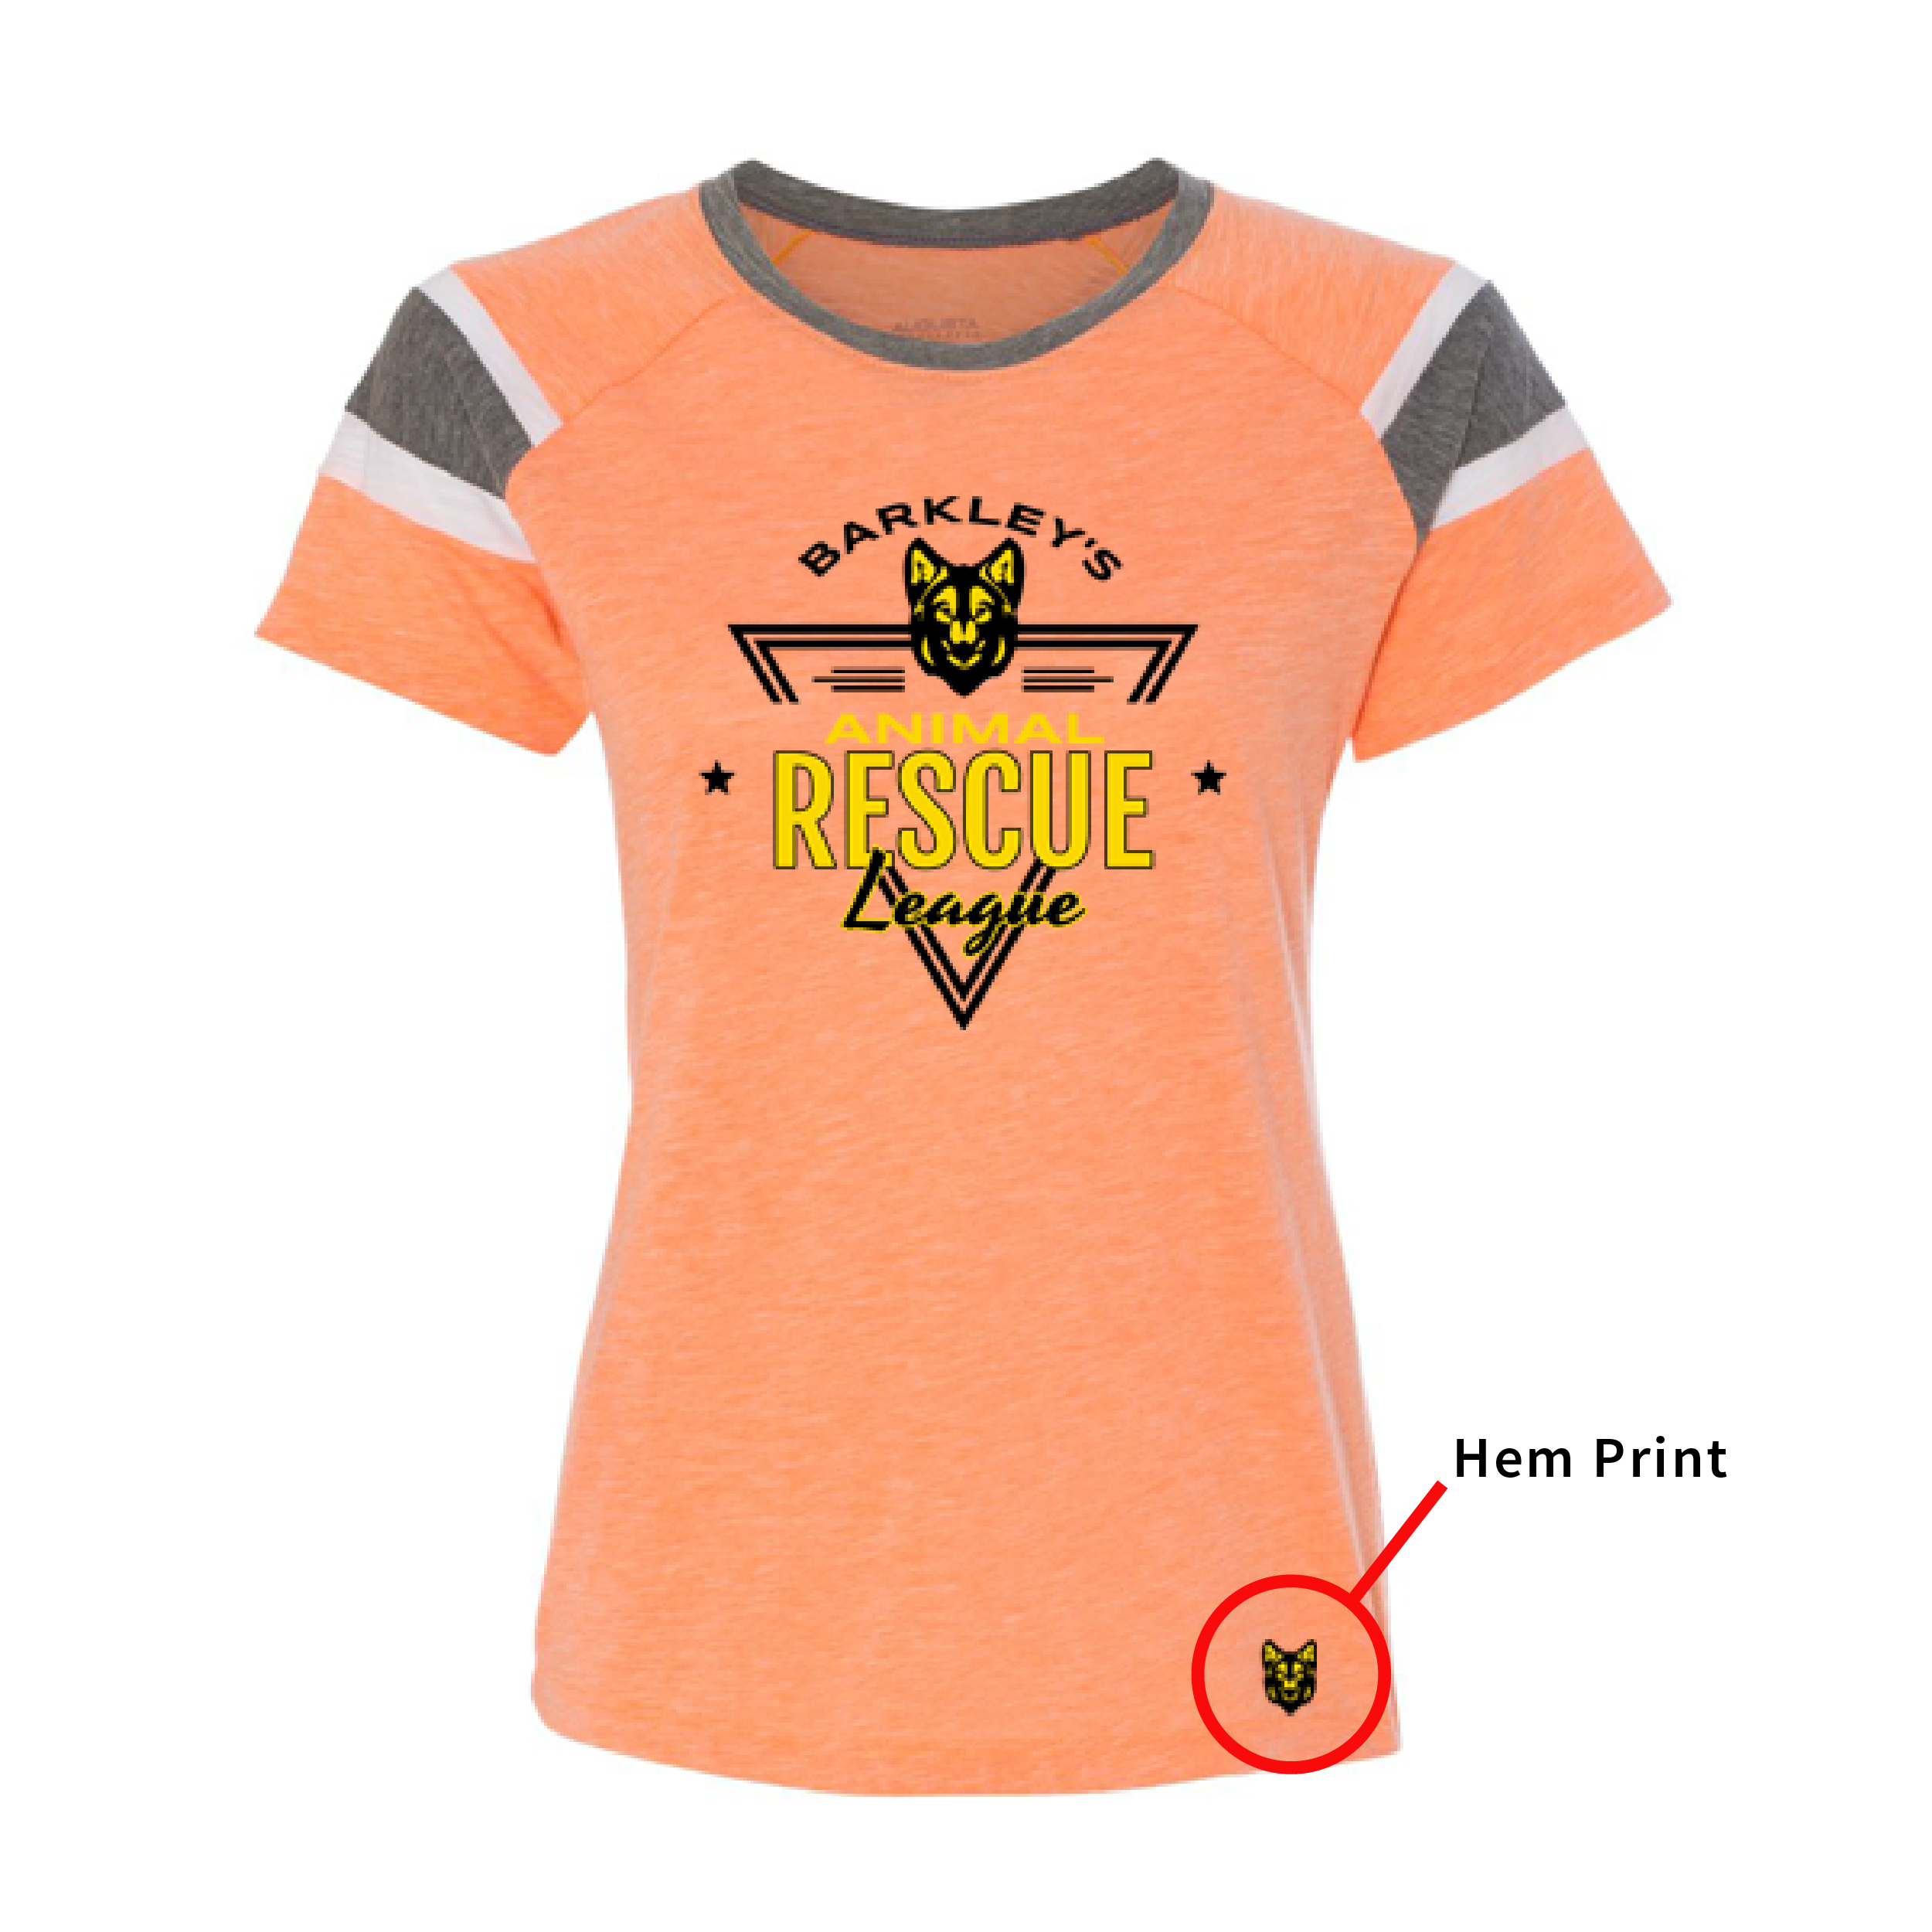 Customized T Shirts Front And Back Broken Arrow Wear Blog